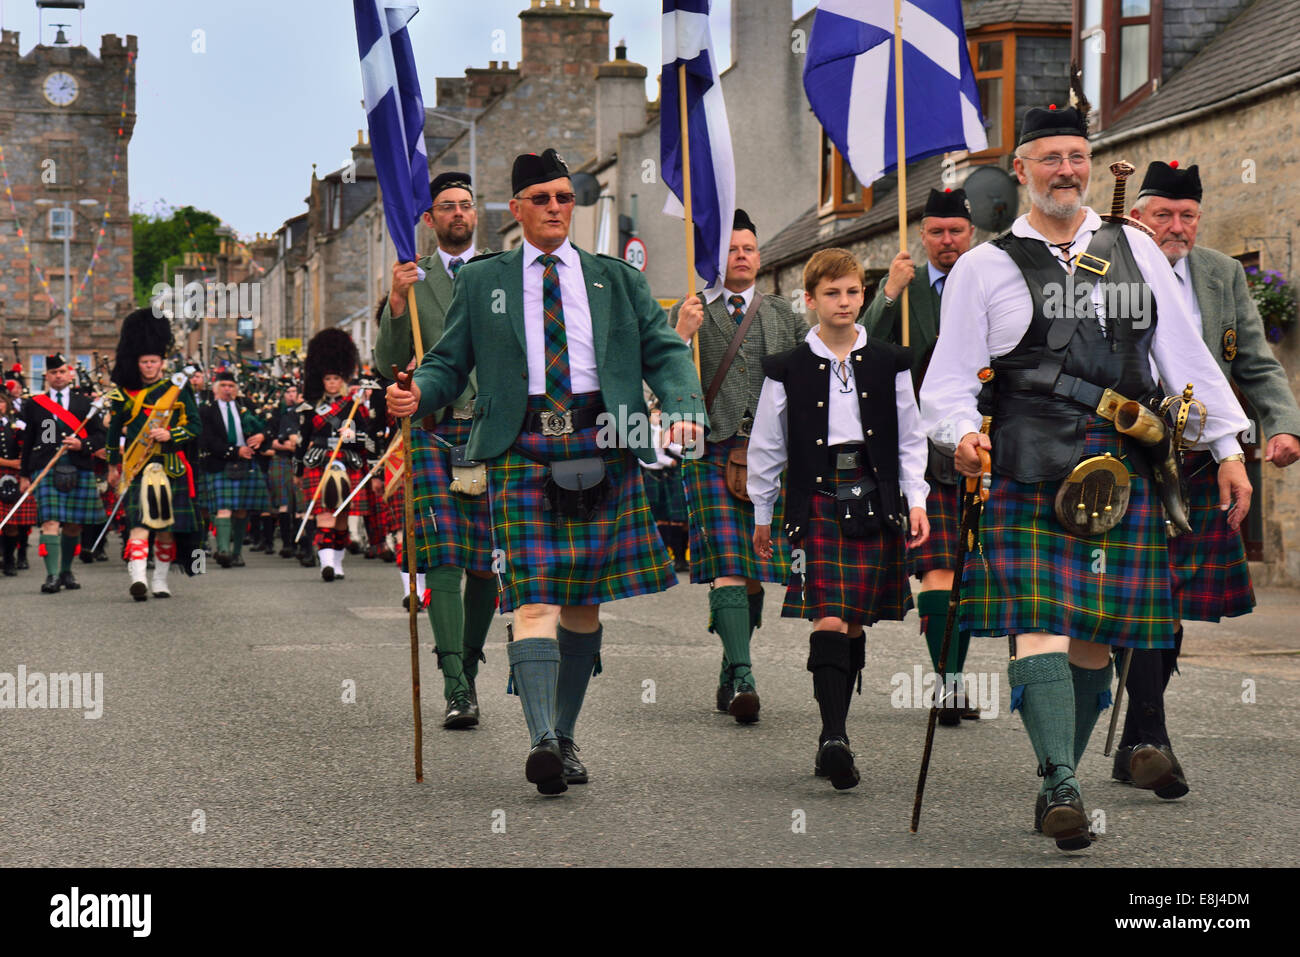 City dignitaries leading the parade of pipe bands, Dufftown, Moray, Highlands, Scotland, United Kingdom - Stock Image